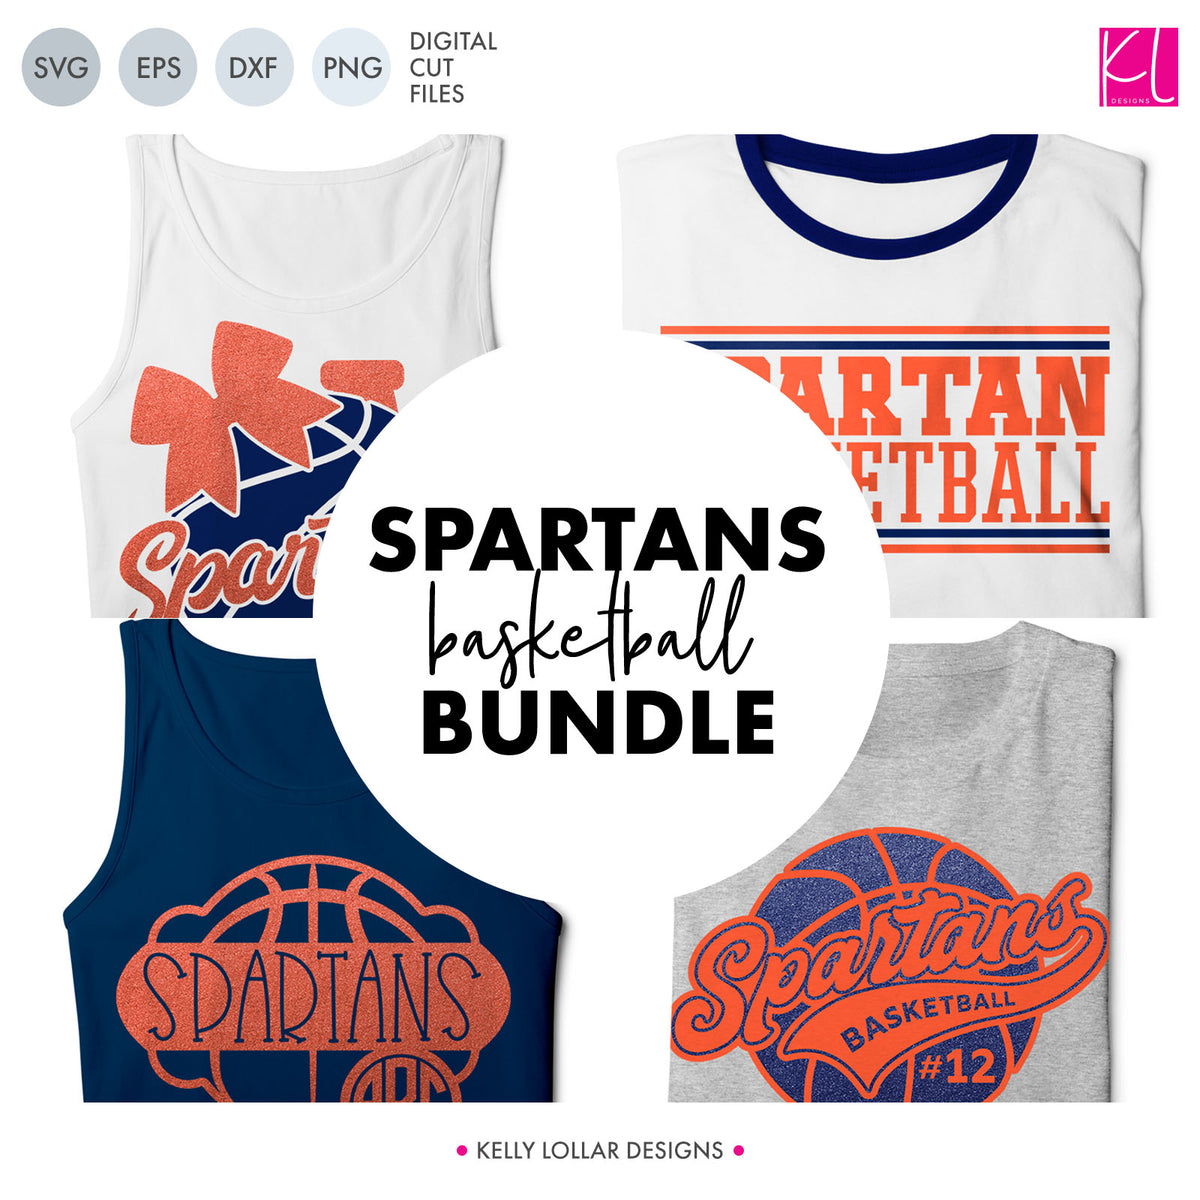 Spartans Basketball Bundle | SVG DXF EPS PNG Cut Files